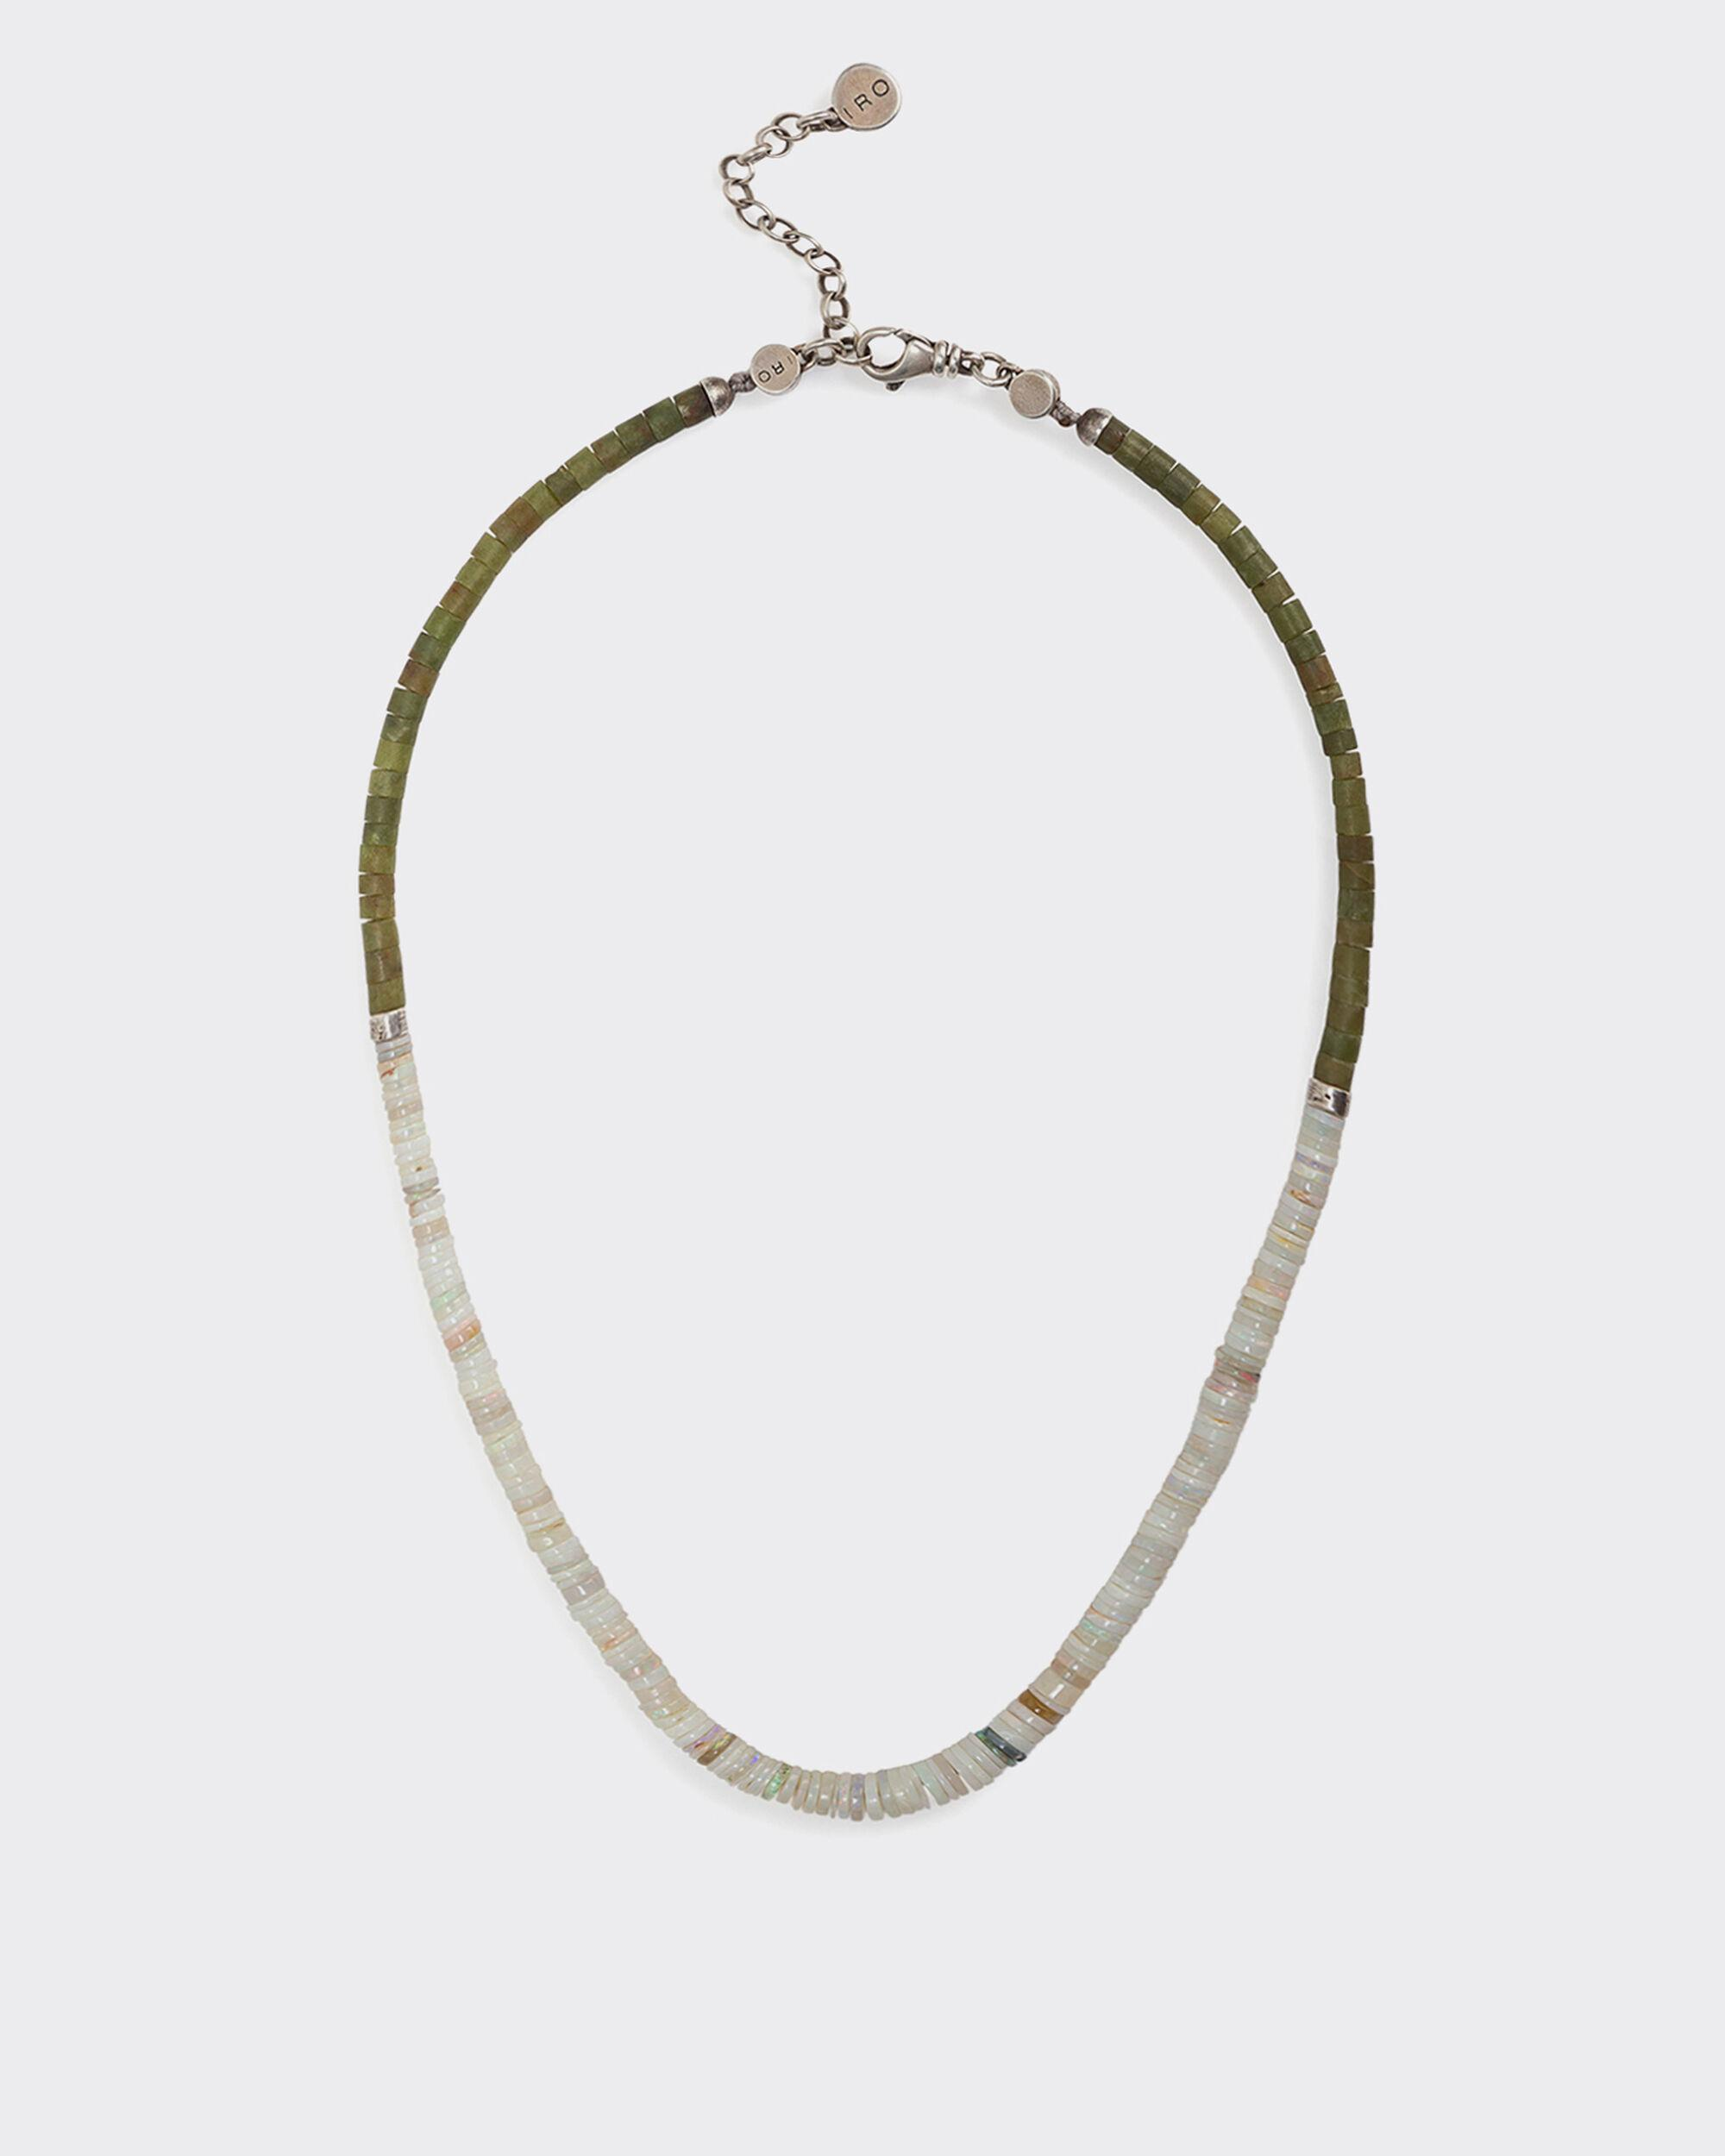 TERBI SILVER, JADE AND OPAL BEAD NECKLACE